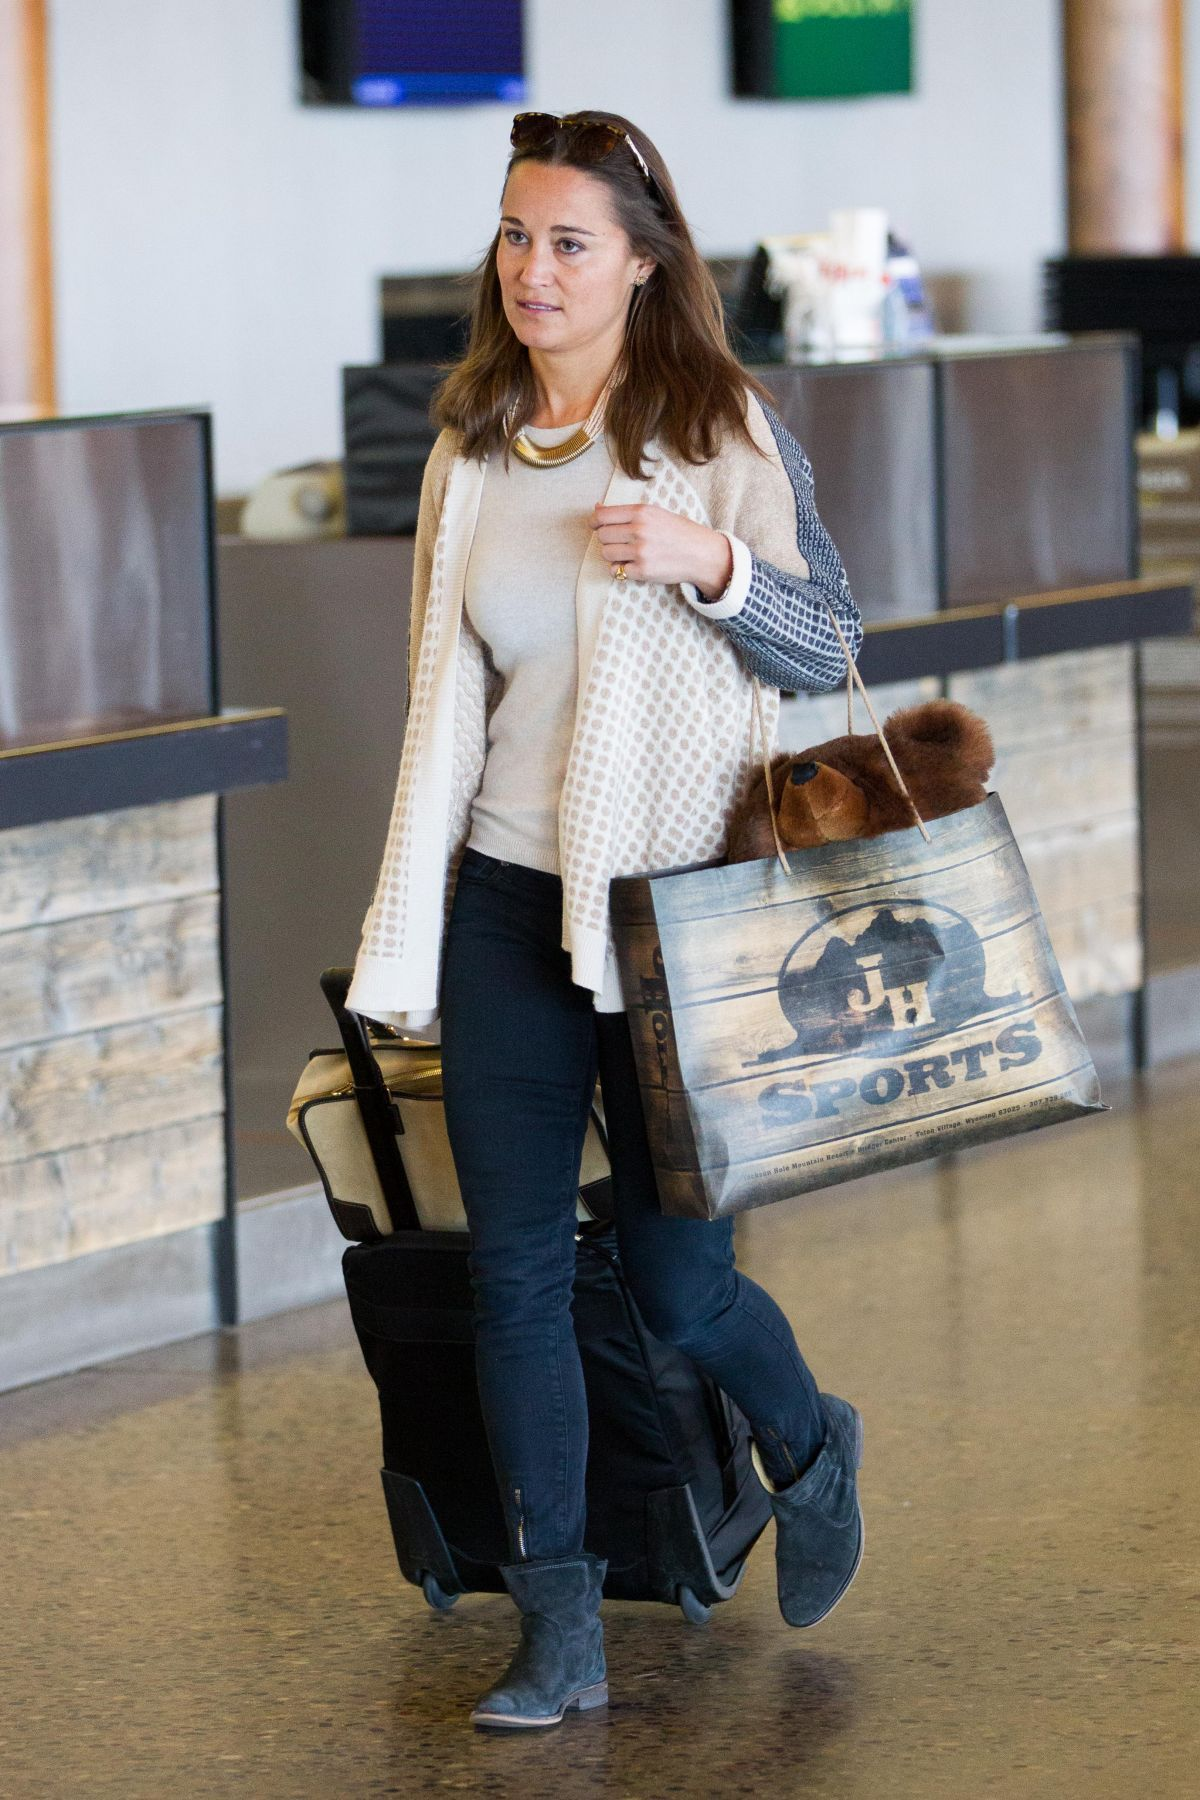 pippa-middleton-spotted-at-jackson-hole-airport-in-wyoming_7.jpg (1200×1800)